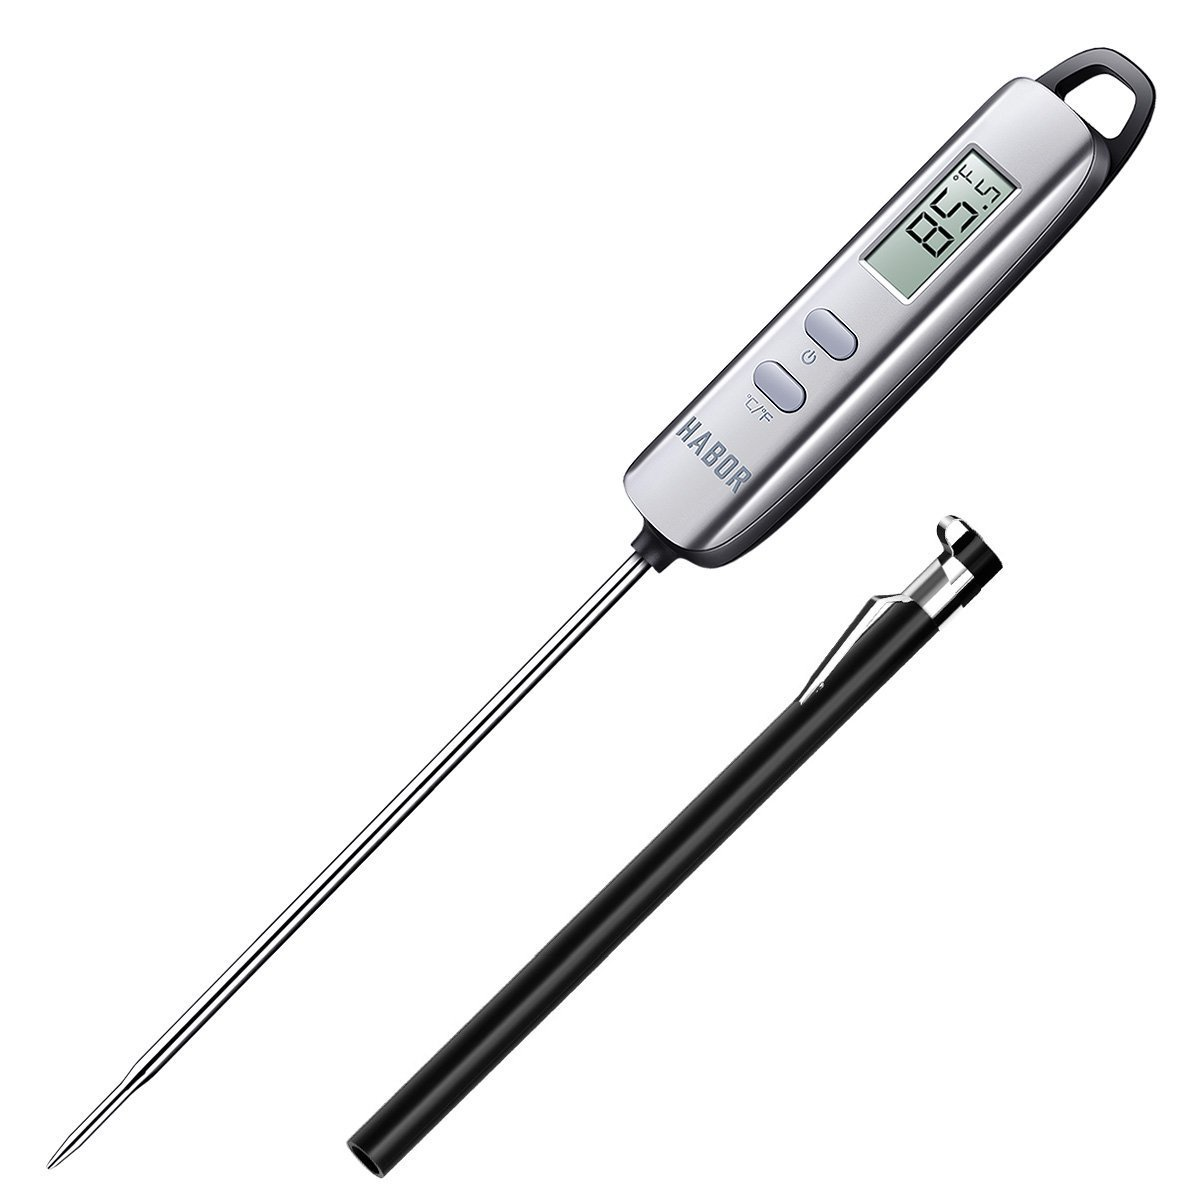 Habor 022 Meat Thermometer, Instant Read Thermometer Digital Cooking Thermometer, Candy Thermometer with Super Long…